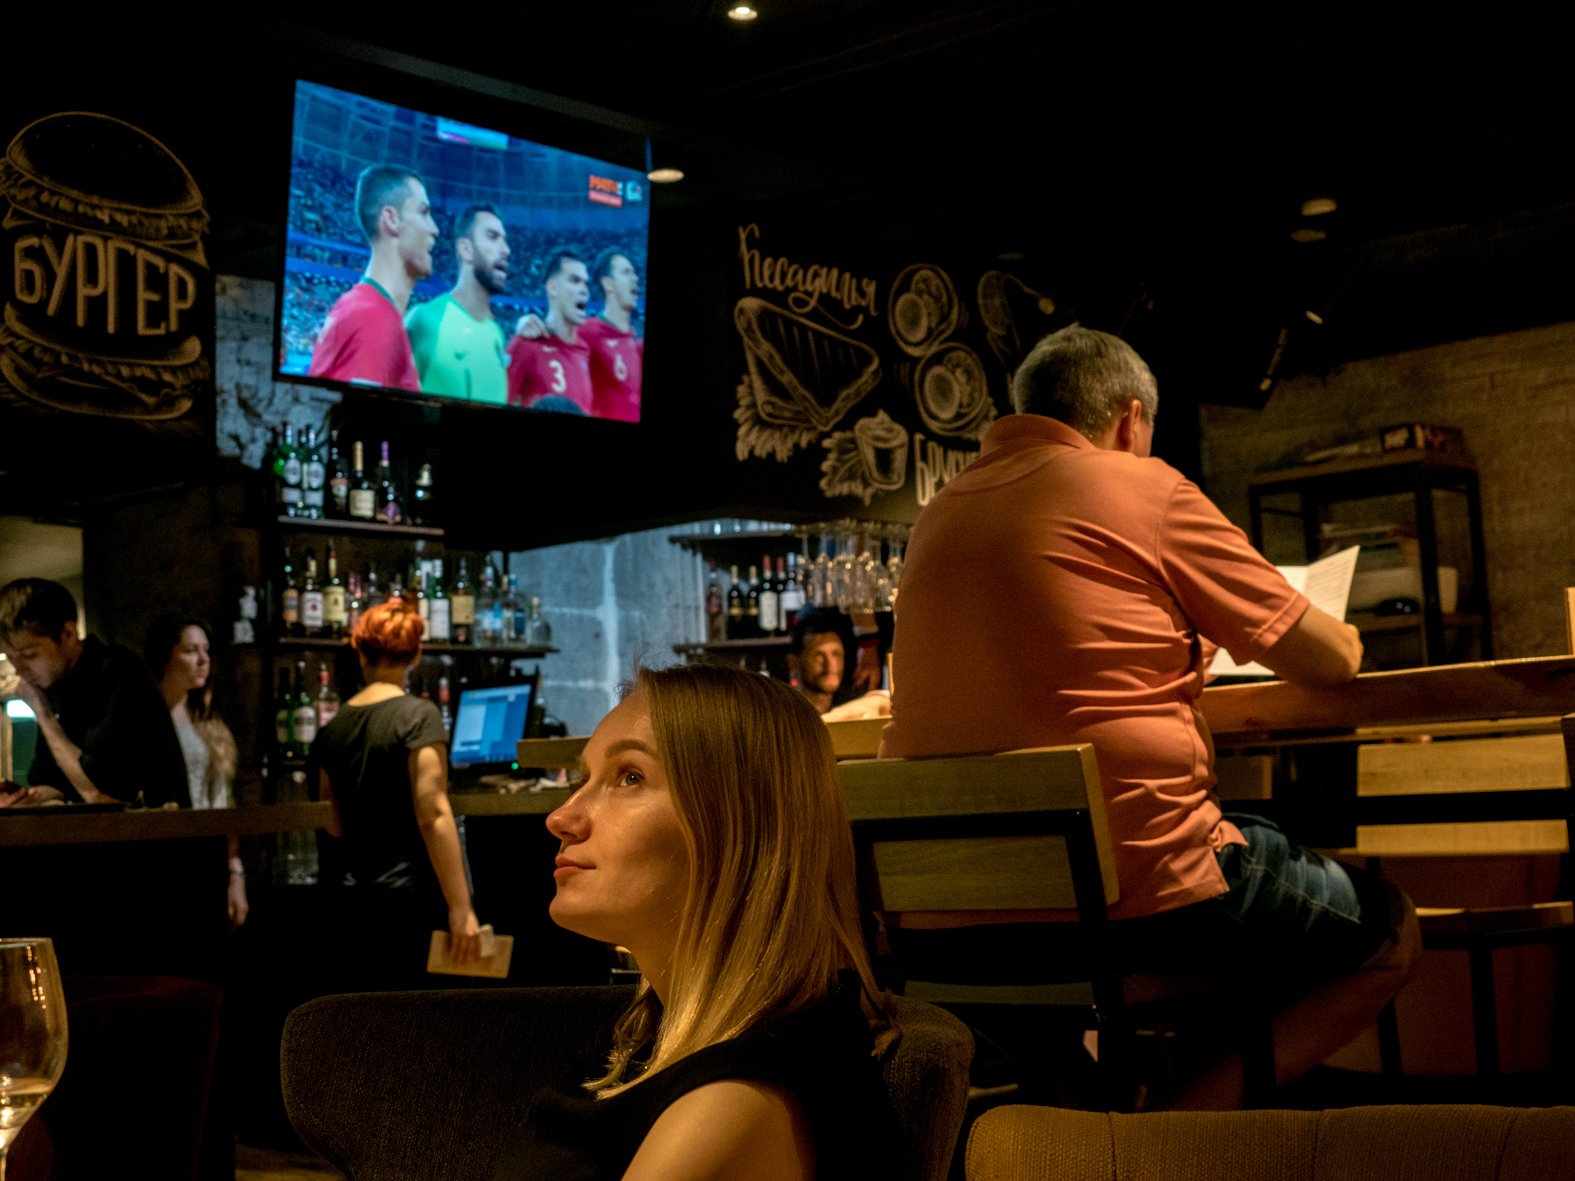 A woman watches a World Cup football match on the television in a bar. The 21st FIFA World Cup football tournament took place in Russia in 2018. It was the first World Cup to be held in Eastern Europe and the eleventh time that it has been held in Europe. For the first time the tournament took place on two continents – Europe and Asia. All but two of the stadium venues were in European Russia.